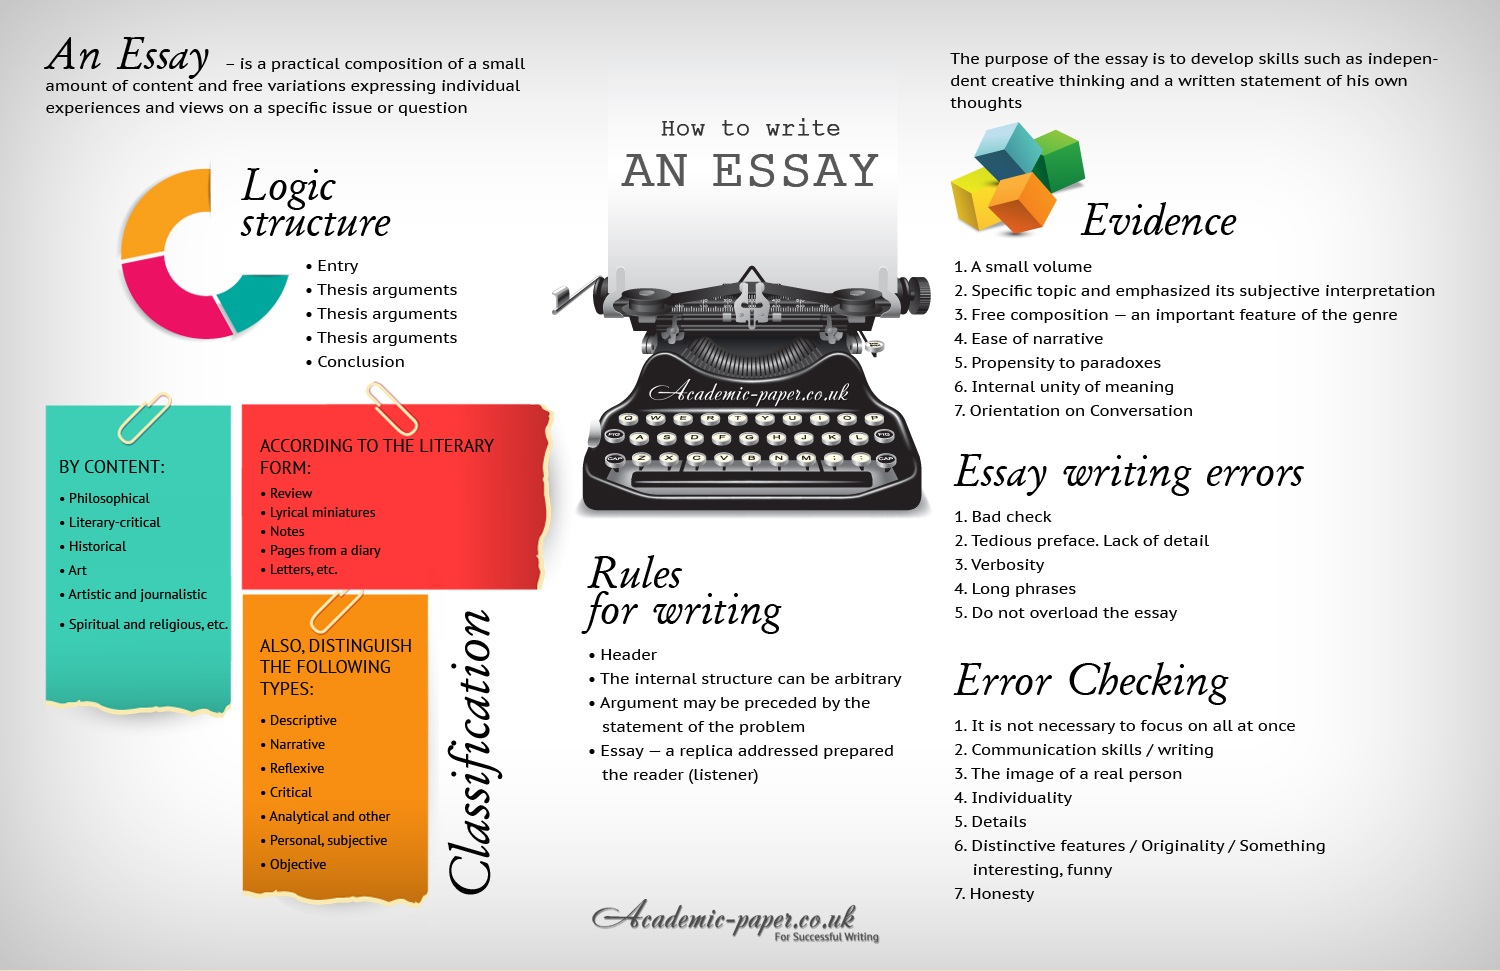 005 How To Write An Essay Example Best Writing Written Essays In Apa Format For College Application Academic Introduction Full